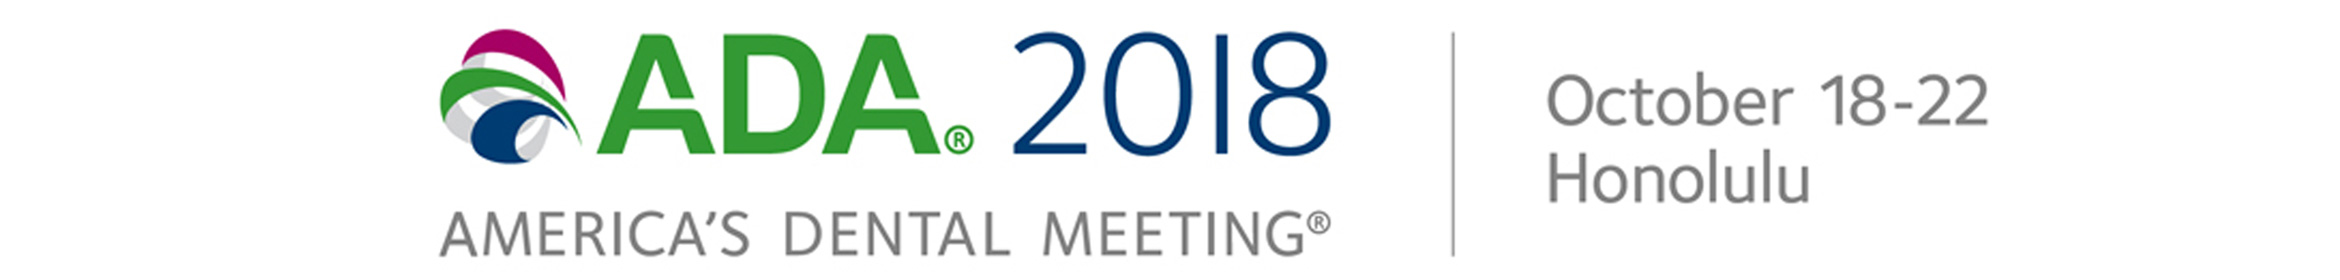 ADA 2018 Annual Meeting Main banner